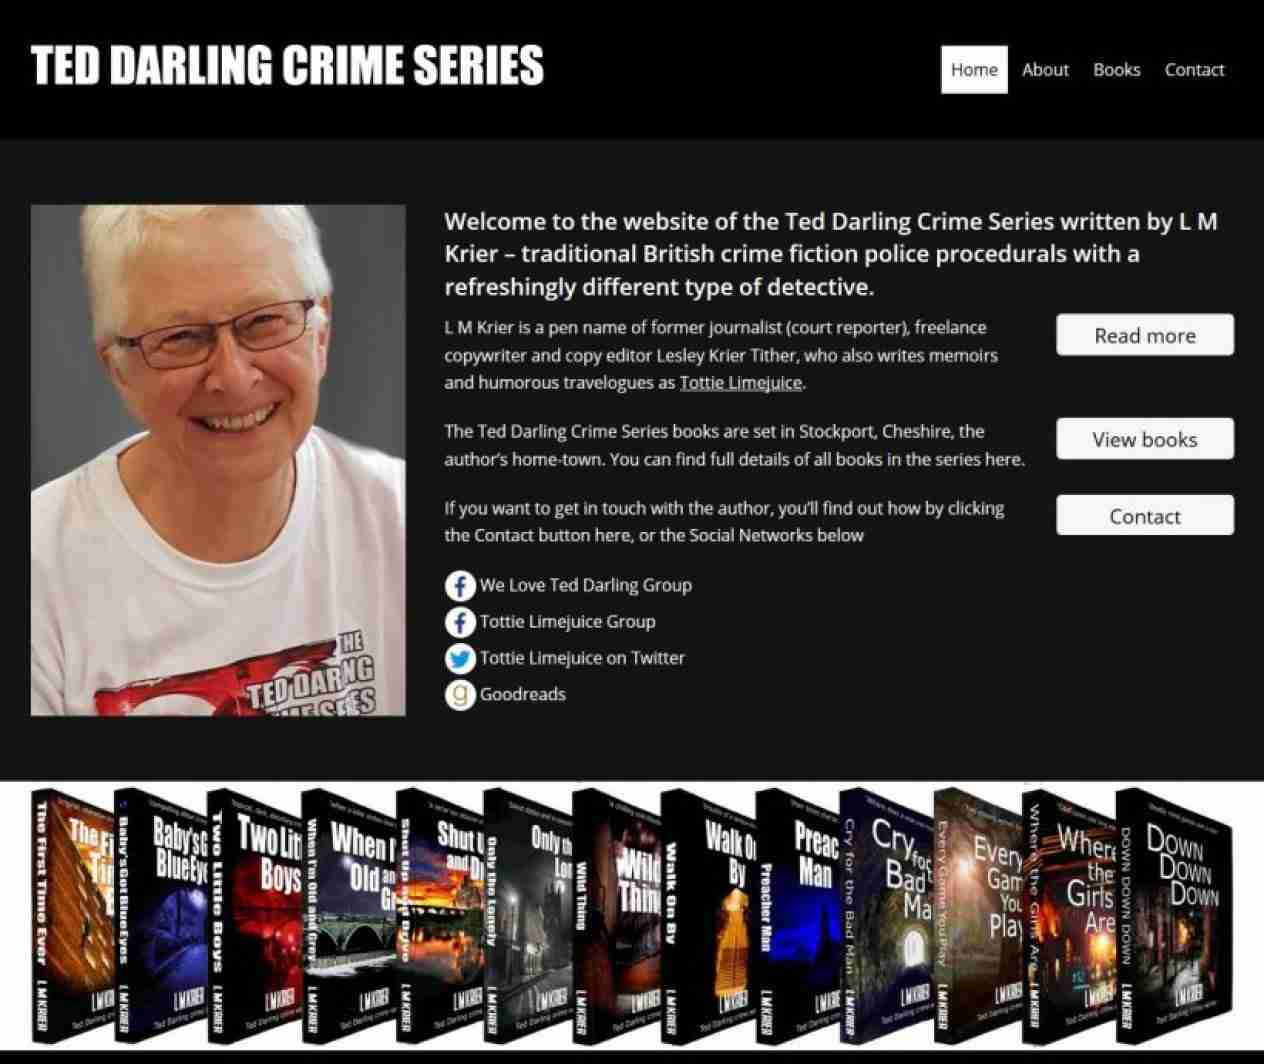 Ted Darling Crime Series - screengrab